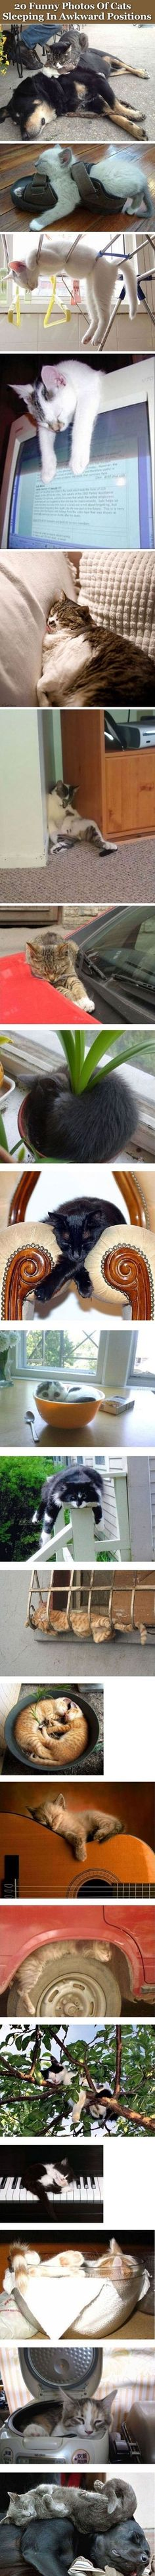 cats-sleeping http://ibeebz.com